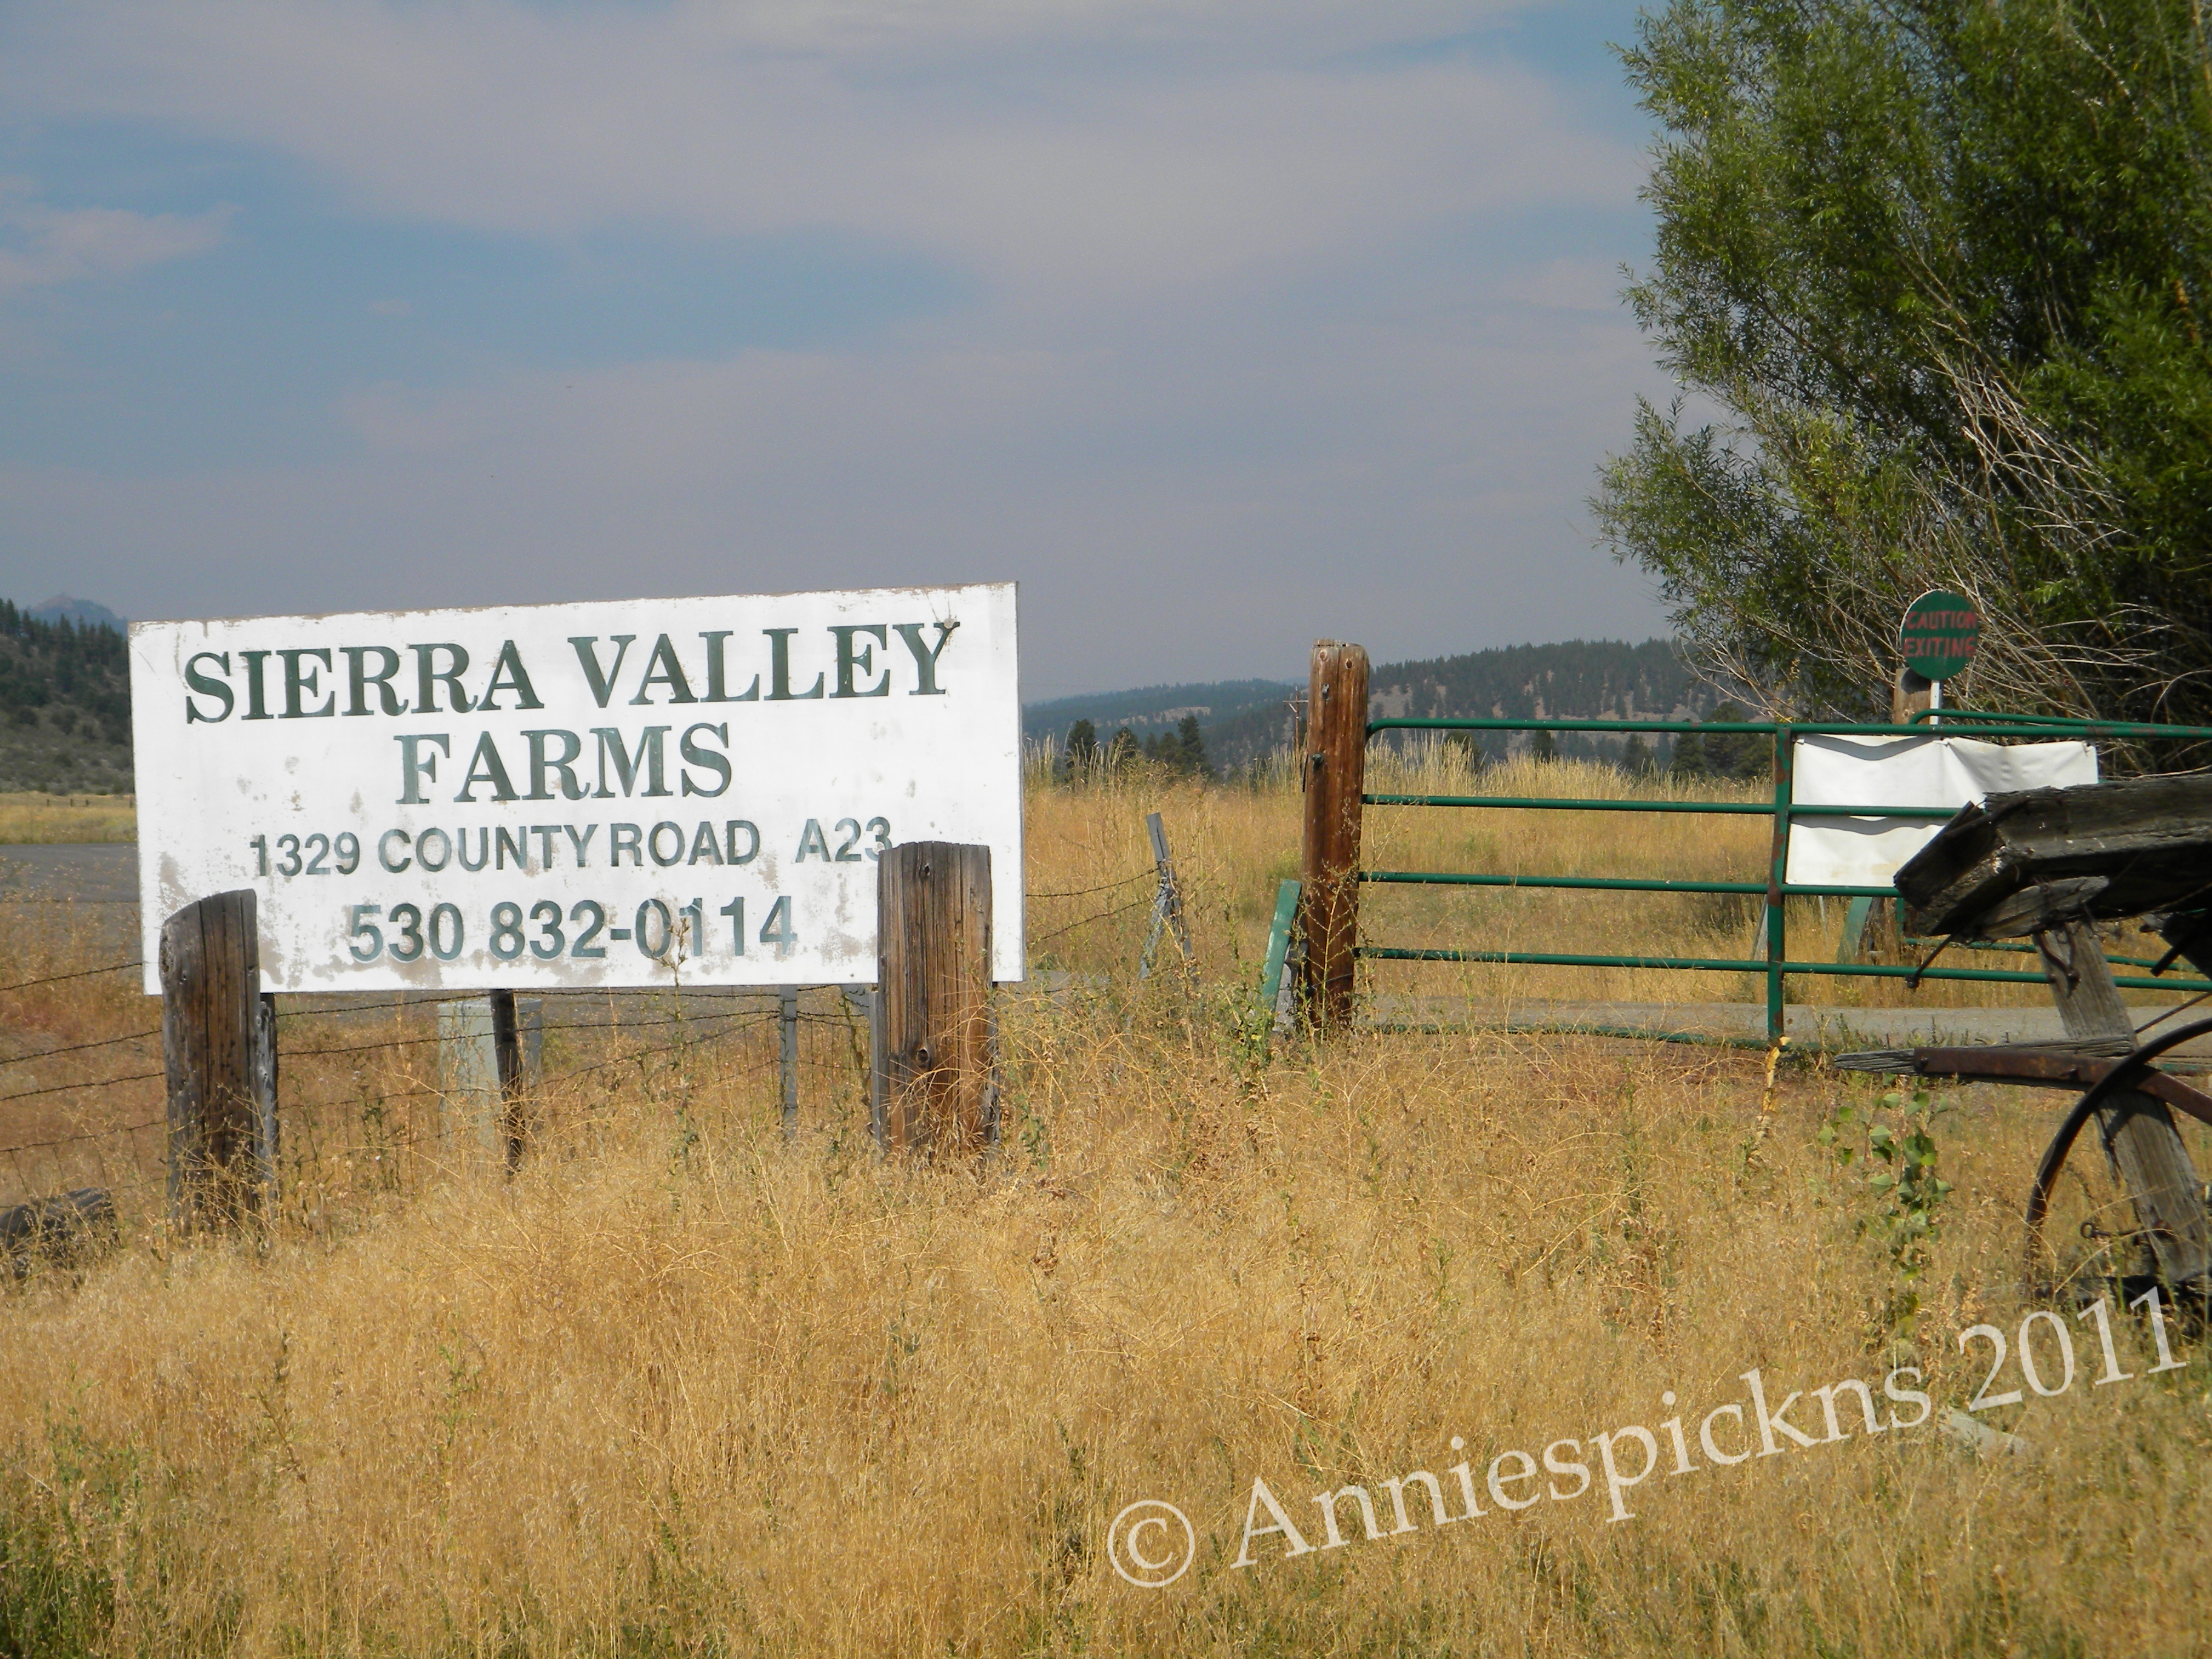 A one of a kind california farmers market anniespickns for Sierra valley